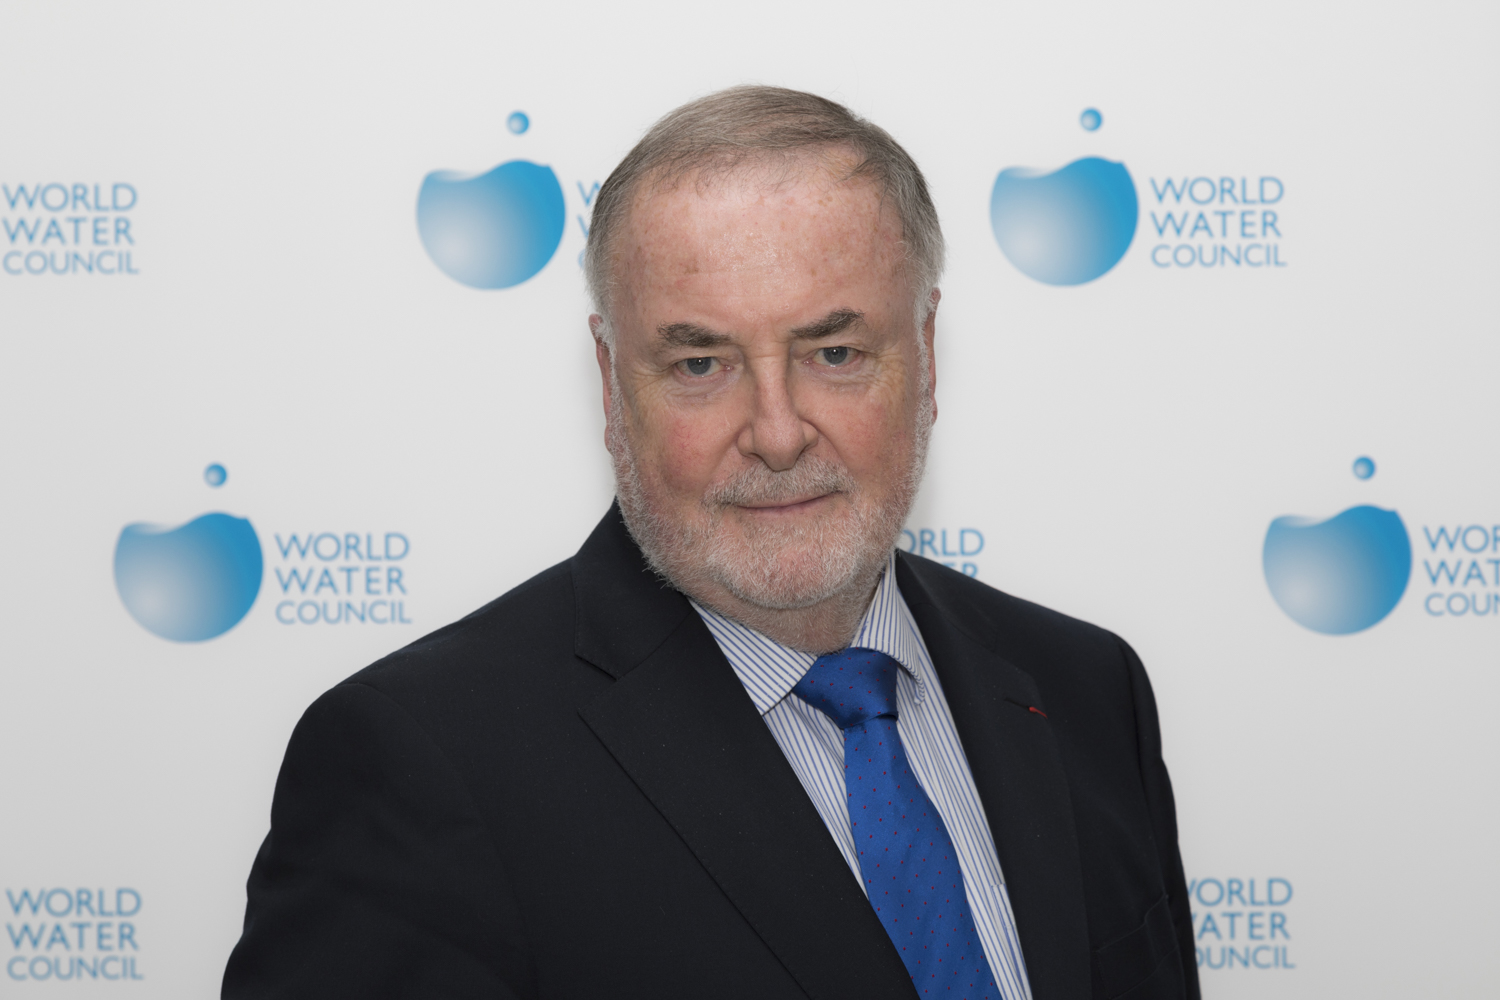 Loïc Fauchon, President of the World Water Council